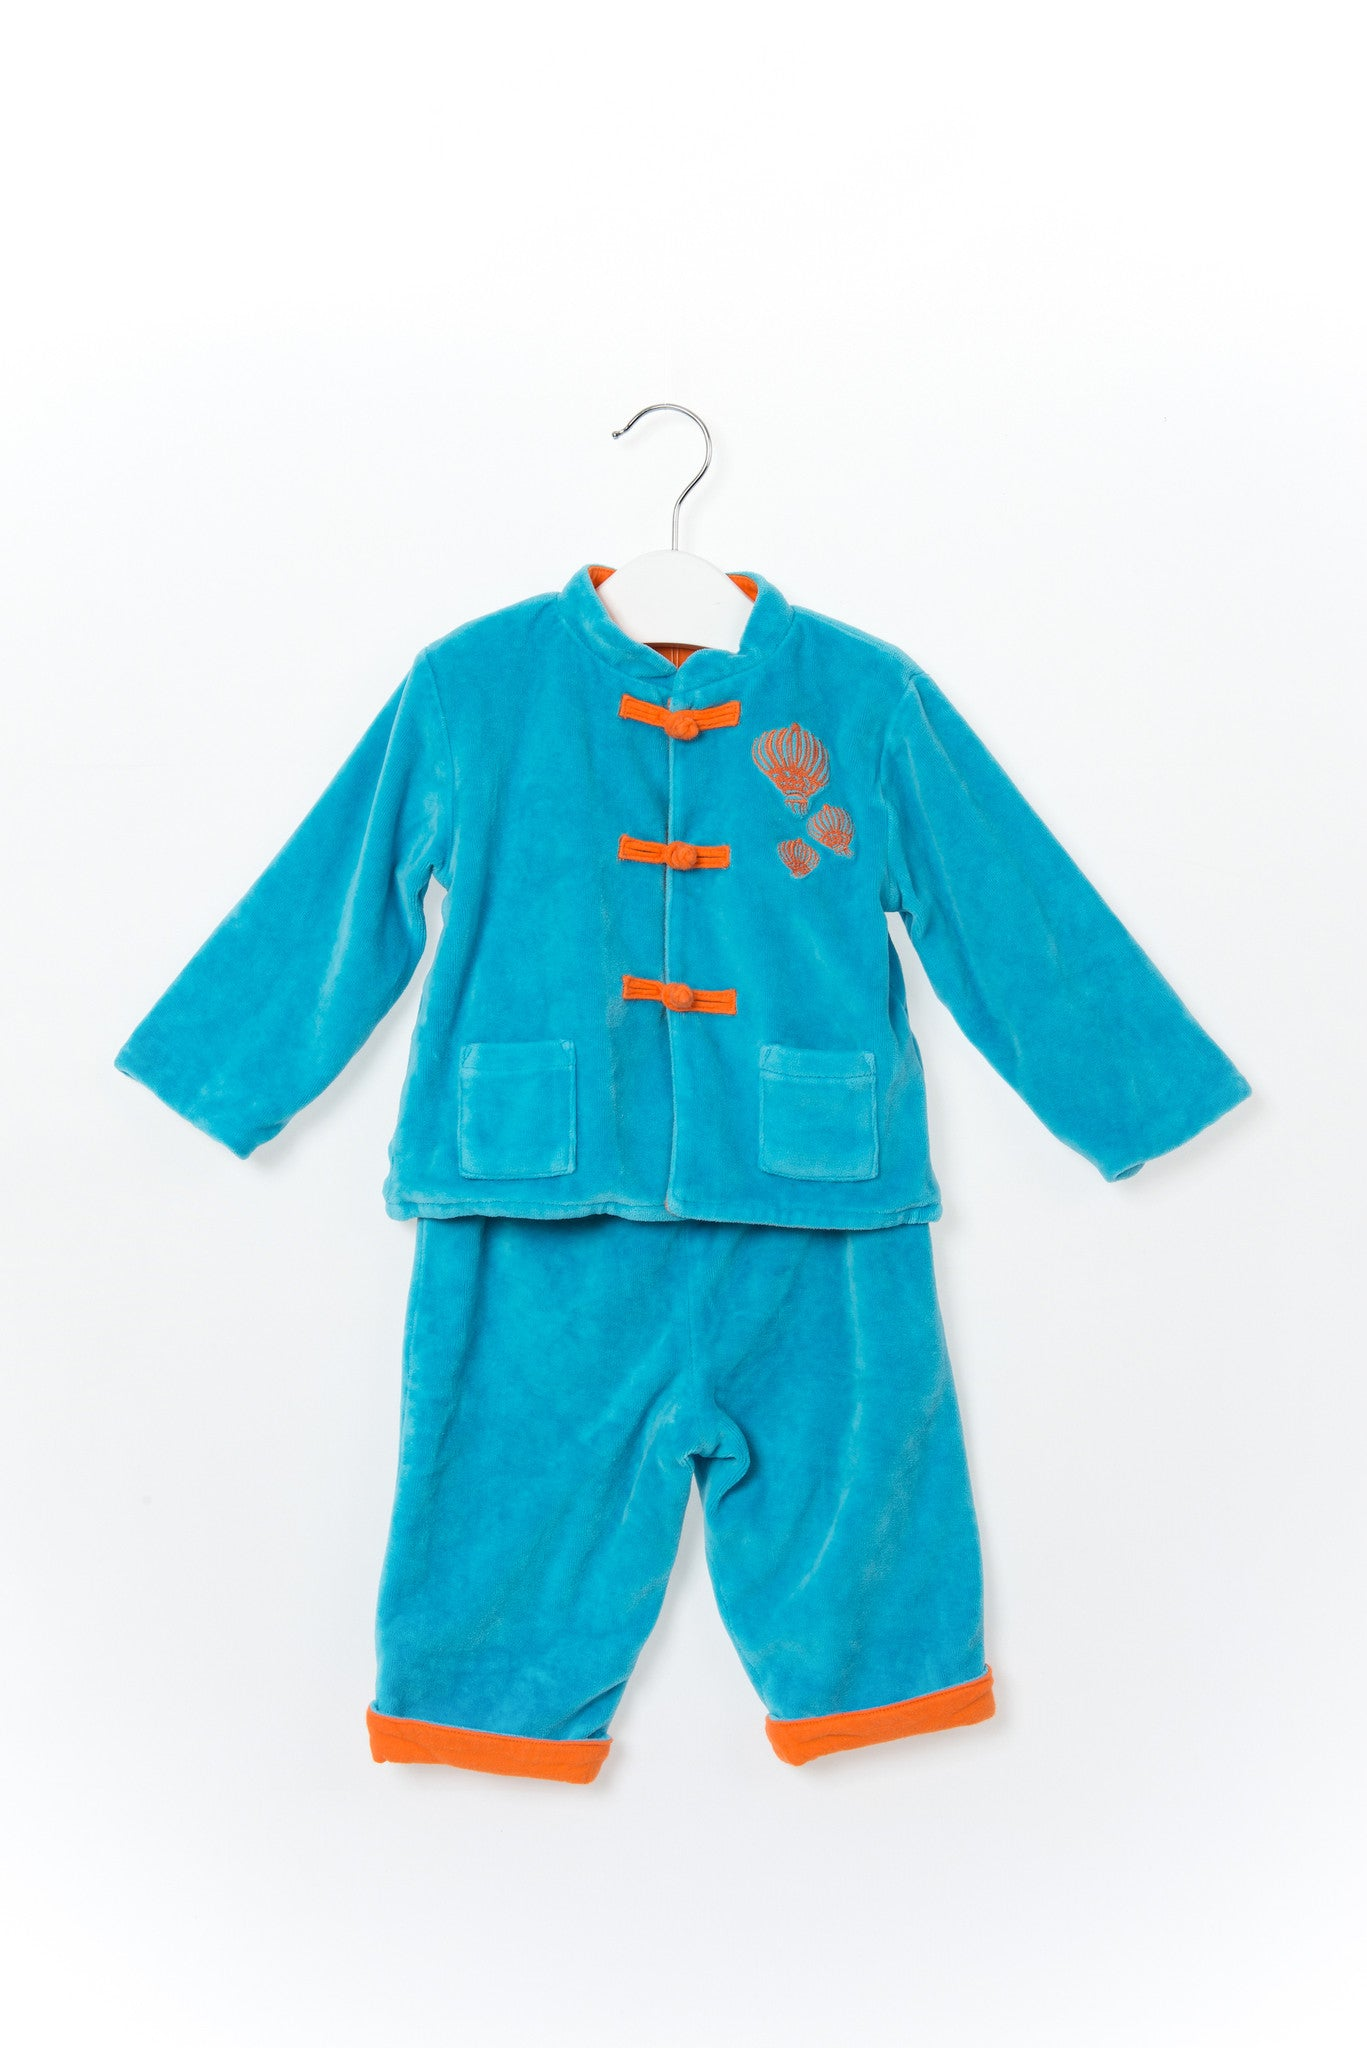 10001268 Shanghai Tang Baby~Jacket and Pants 3-6M at Retykle